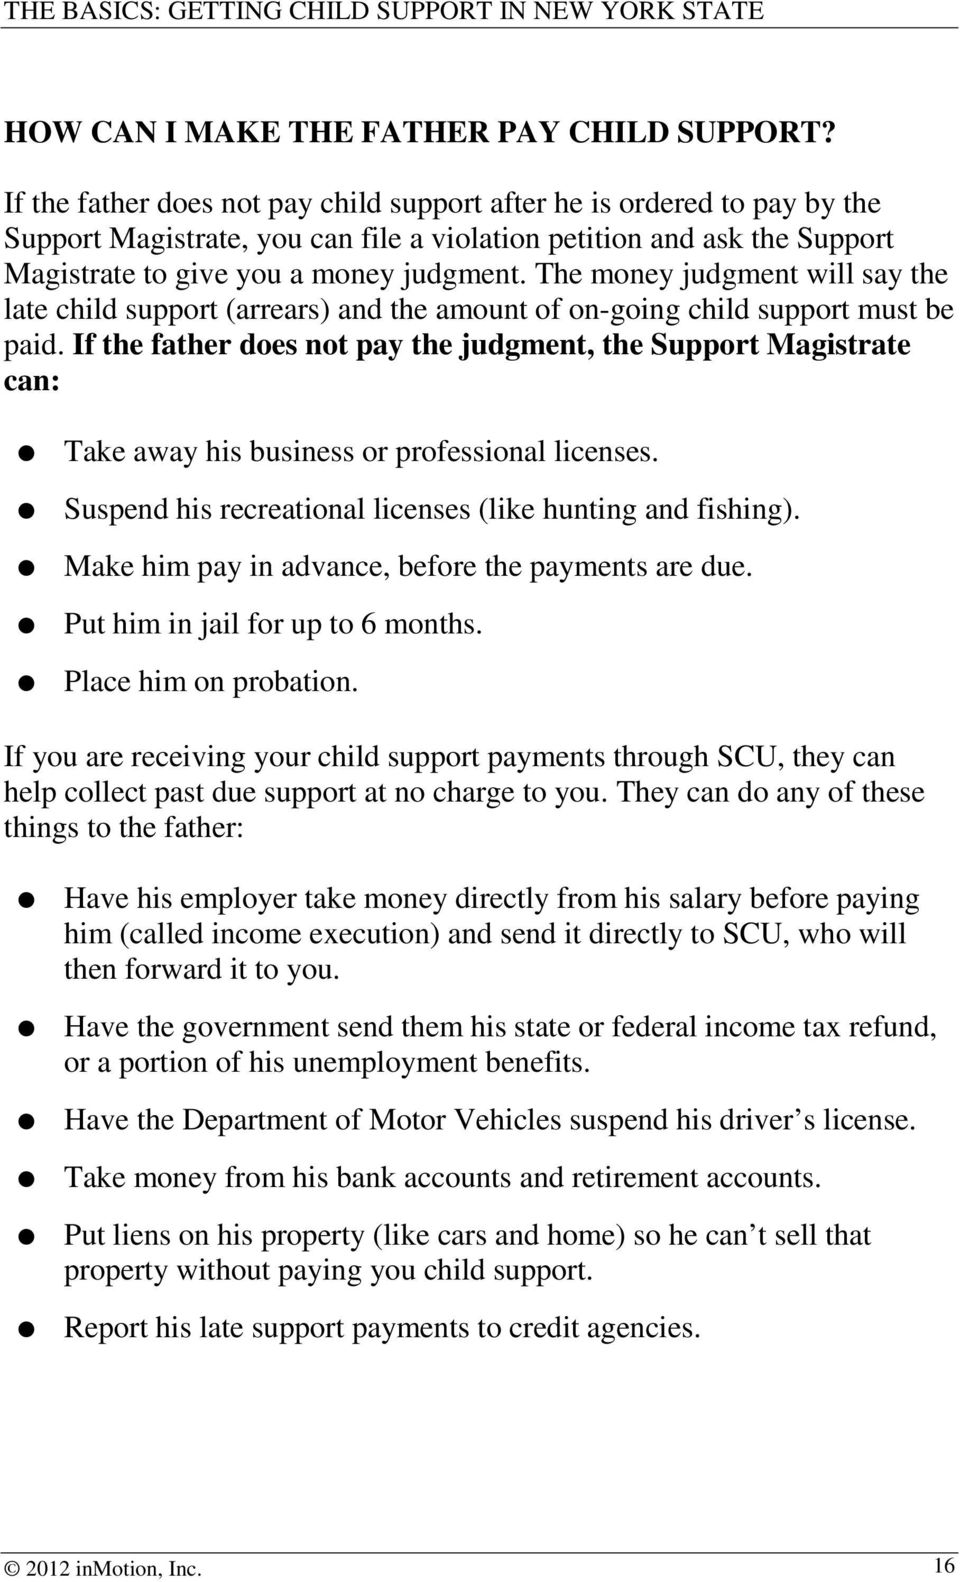 The money judgment will say the late child support (arrears) and the amount of on-going child support must be paid.